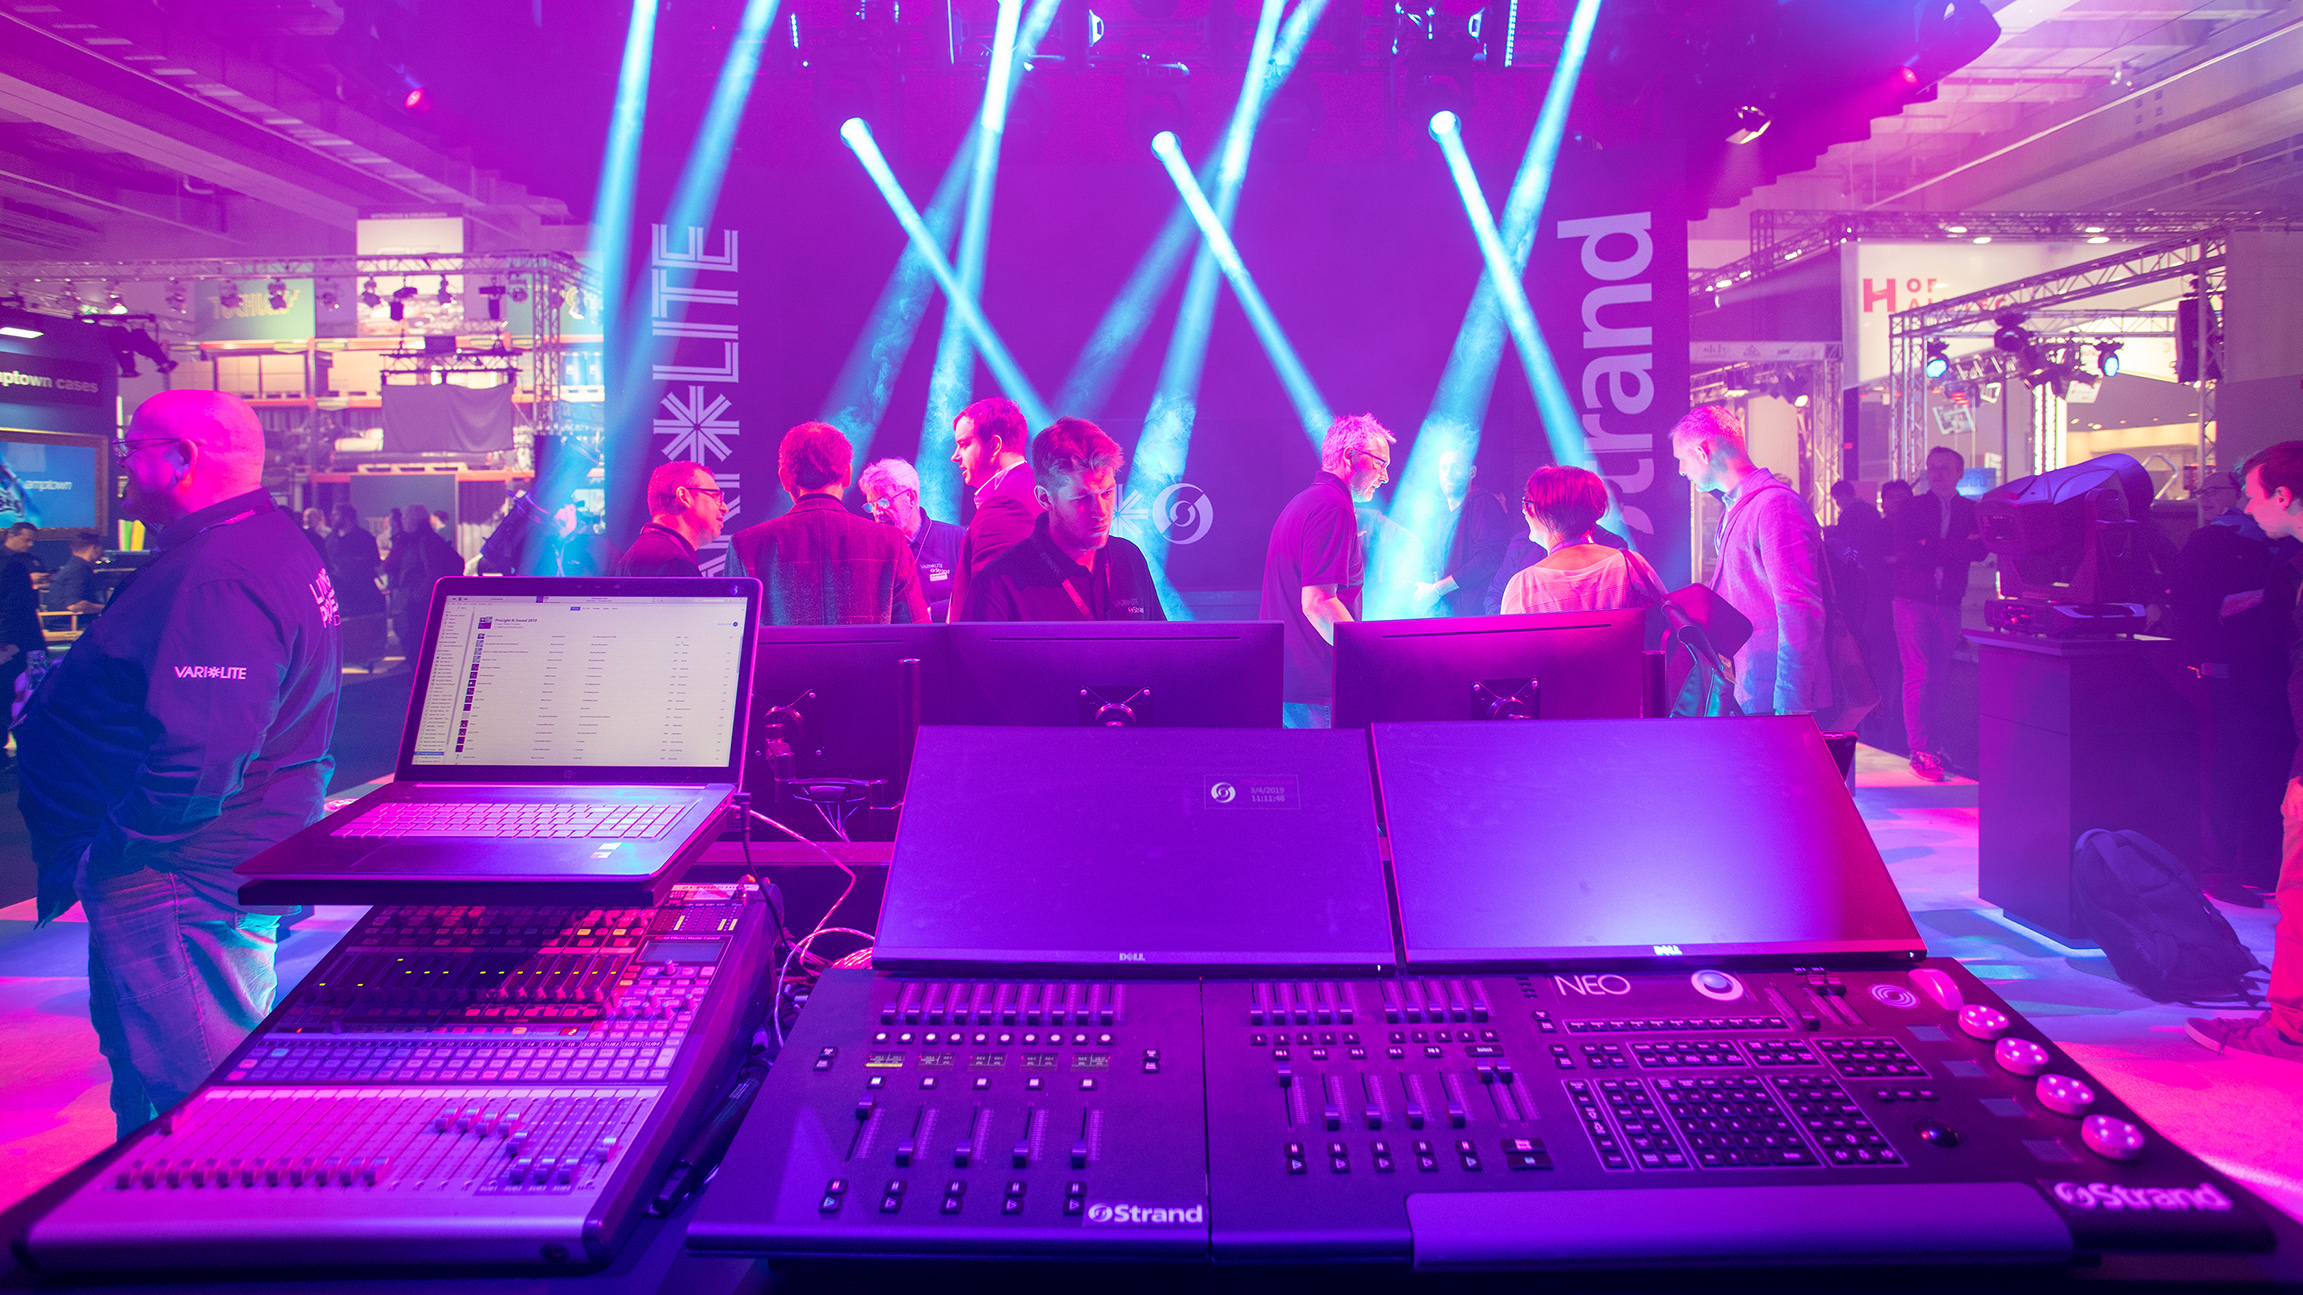 Show and stage lighting and entertainment technology at Prolight + Sound